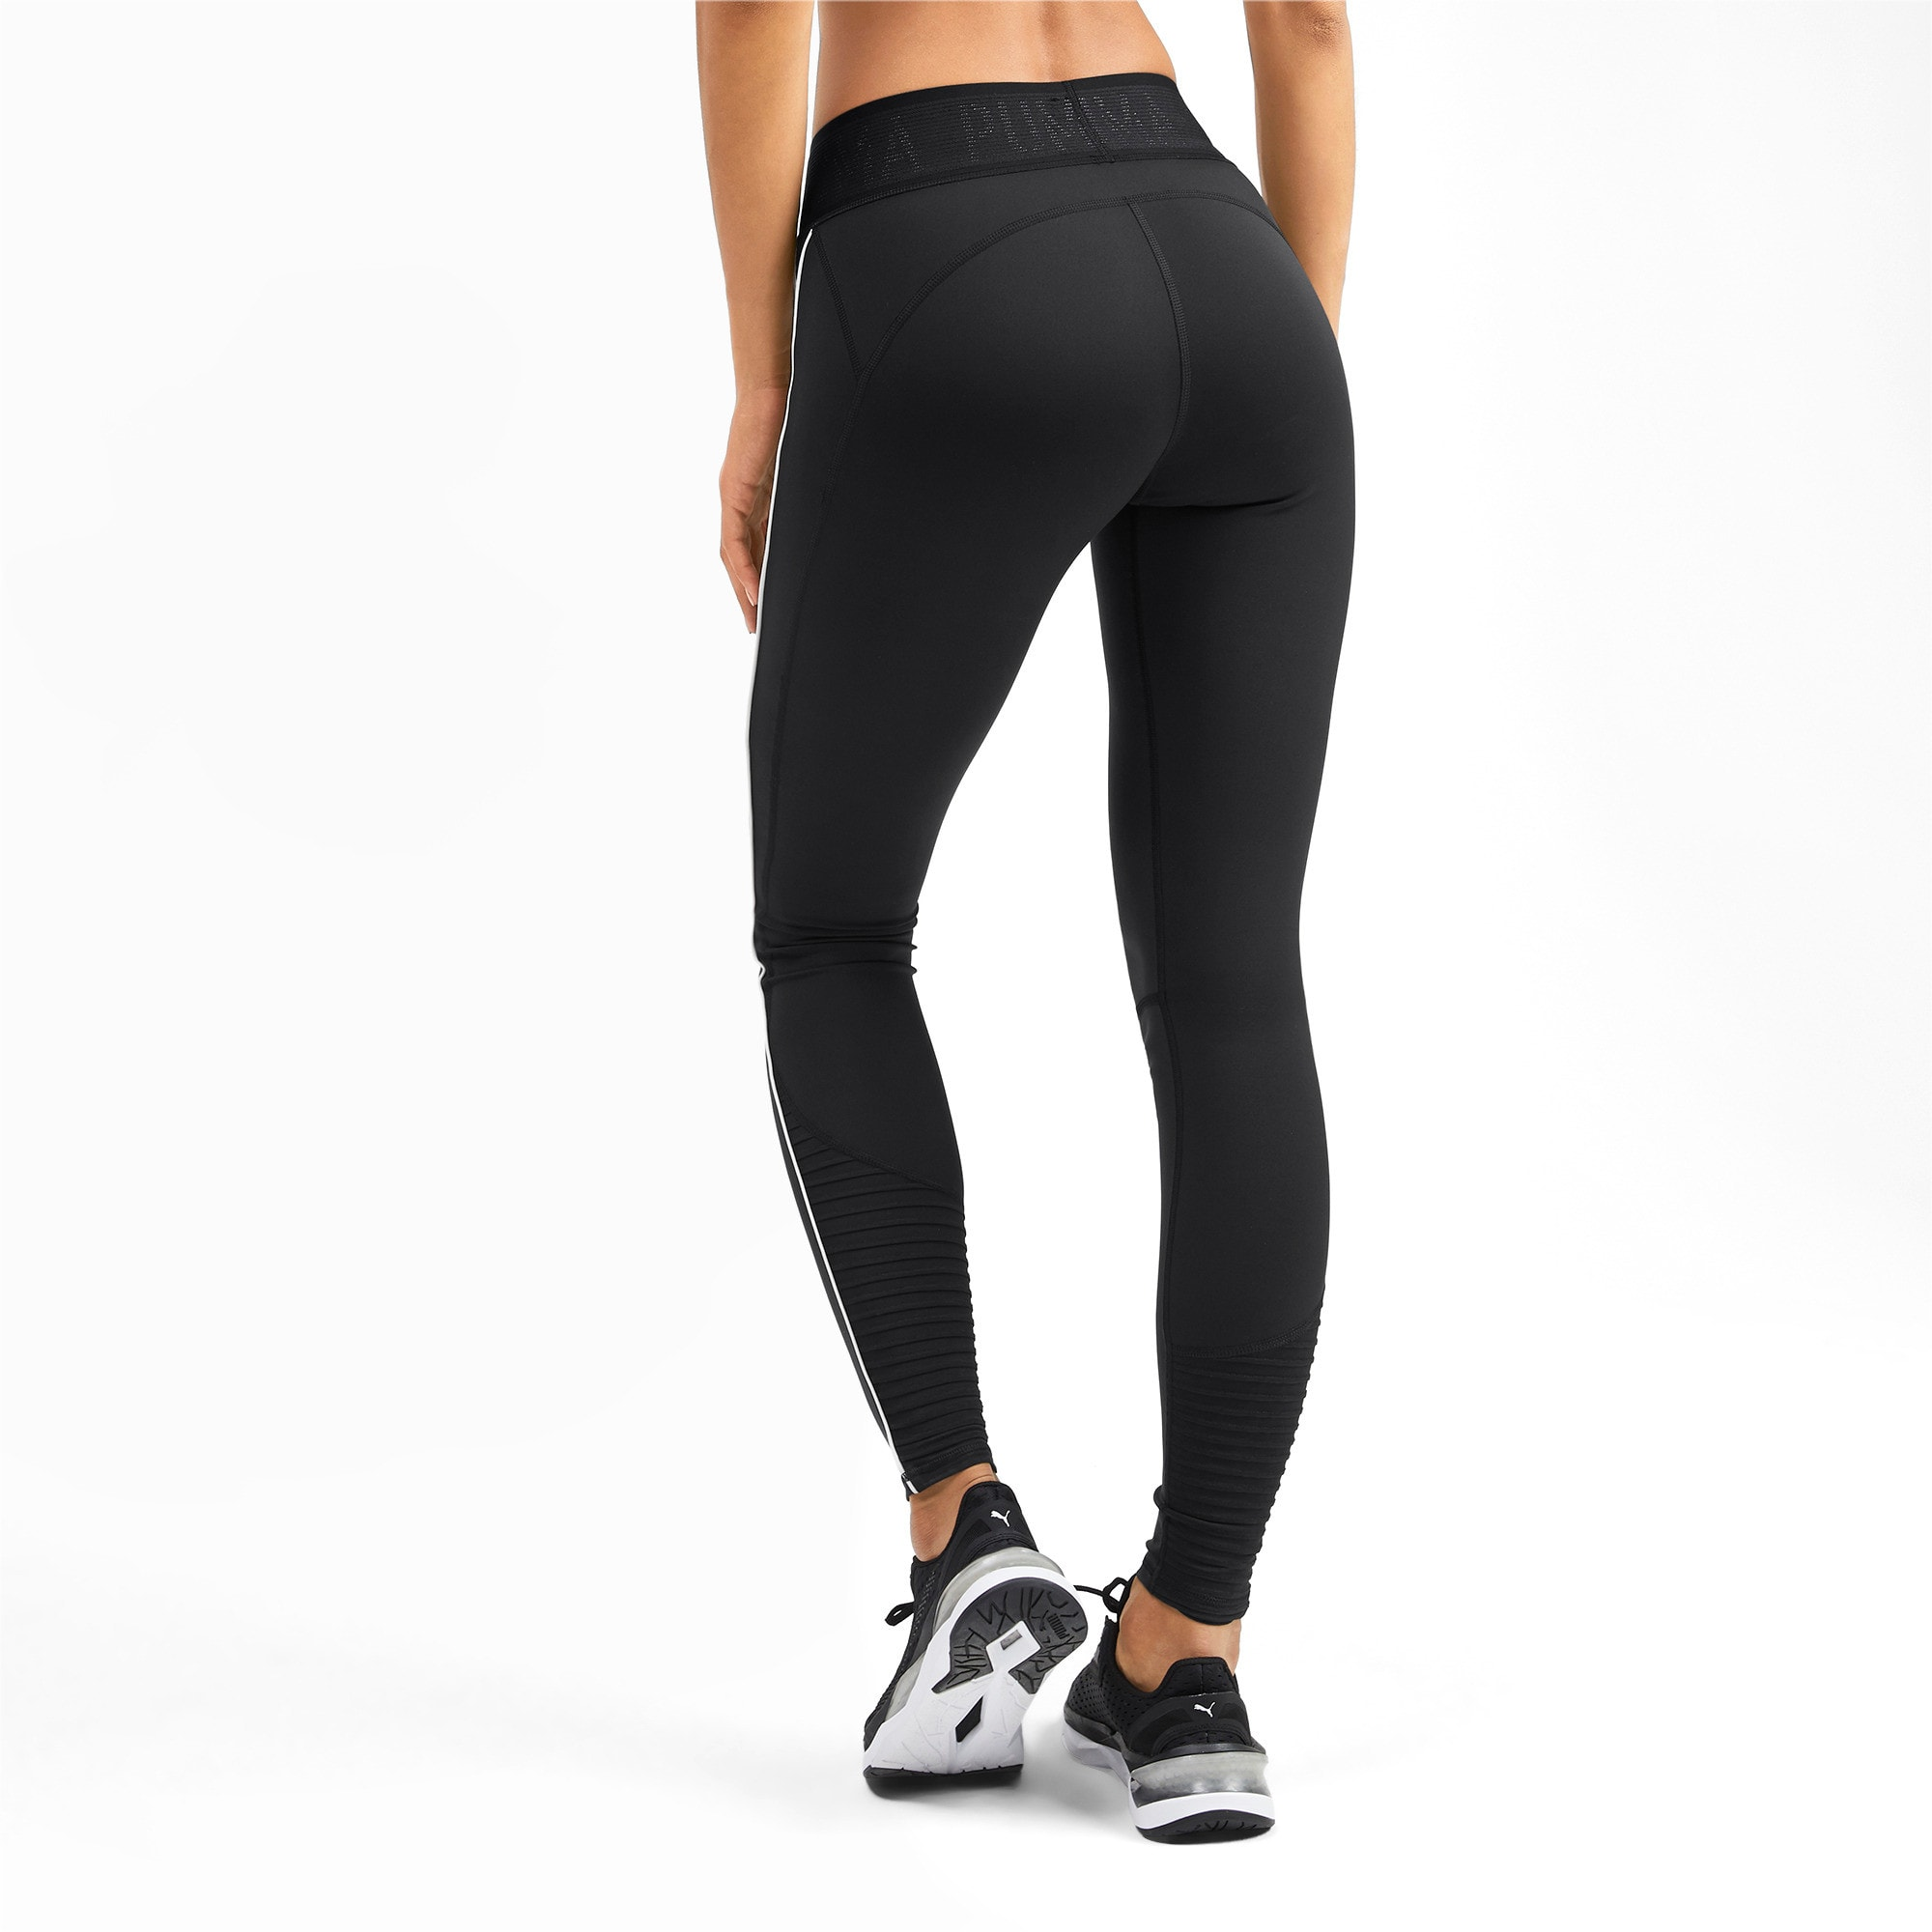 Thumbnail 2 of SHIFT Women's Training Leggings, Puma Black, medium